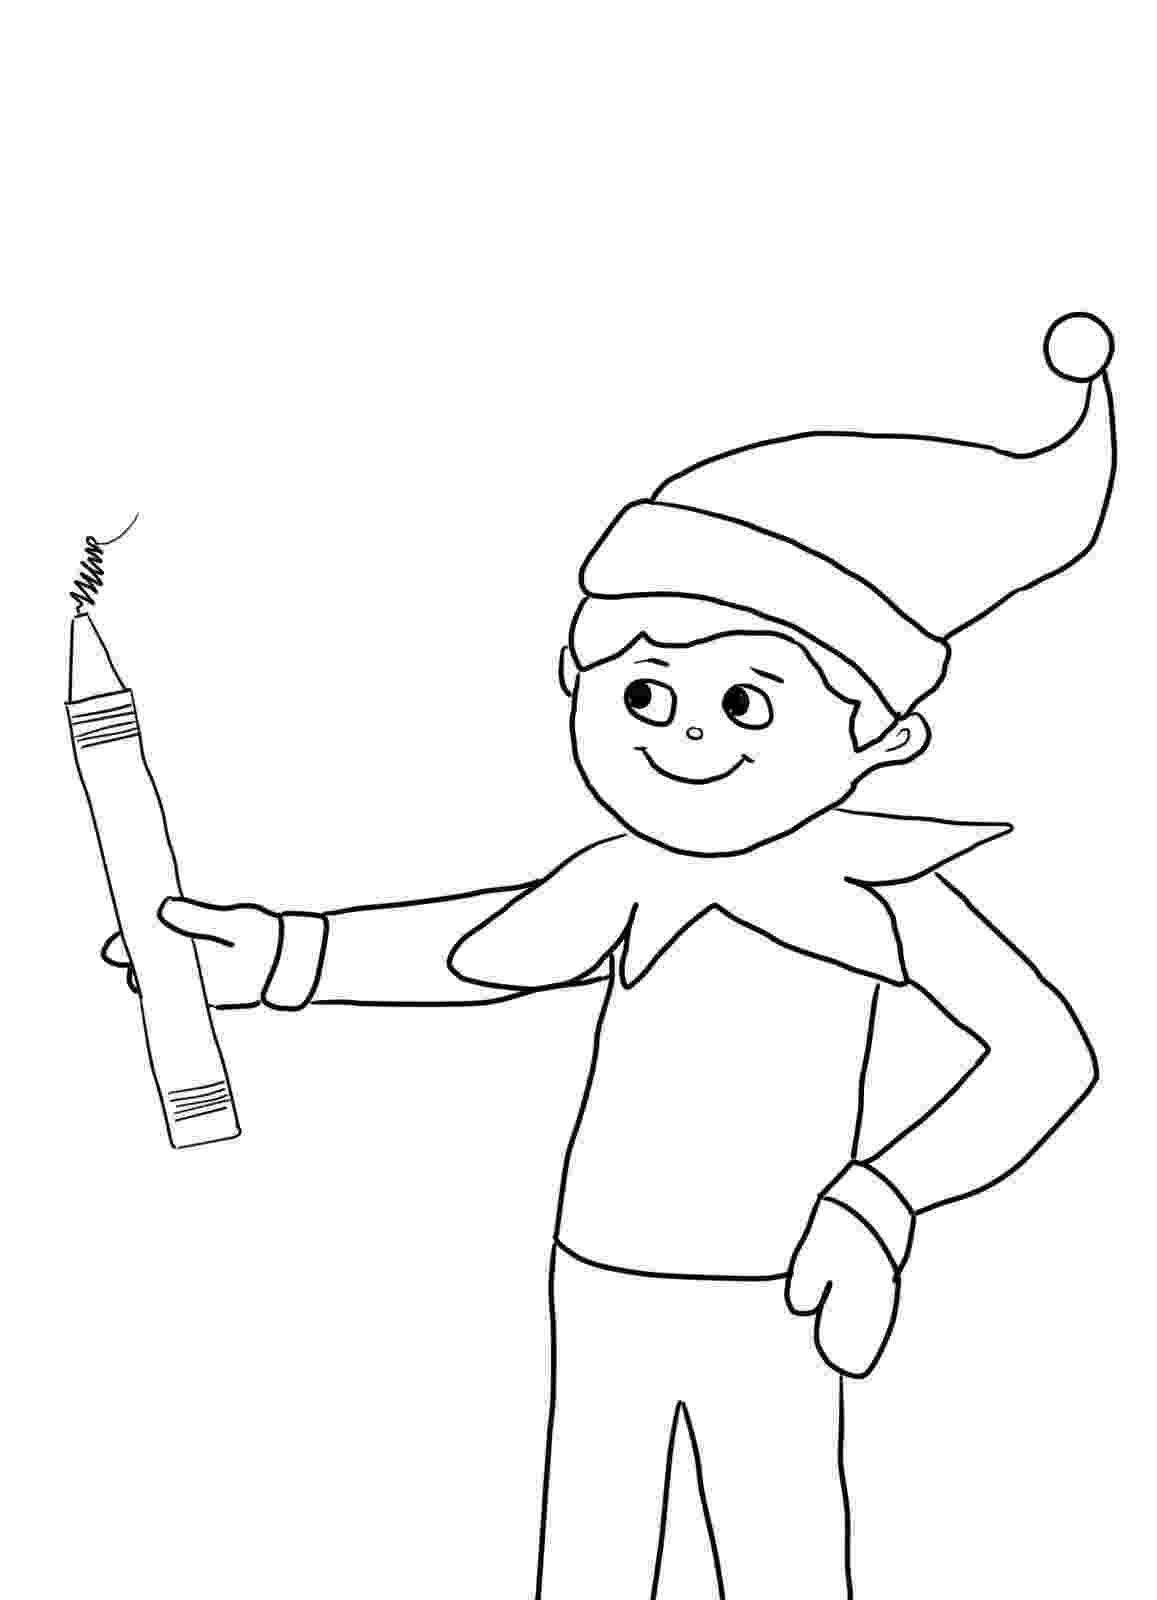 elf on the shelf printable coloring pages elf on the shelf coloring pages coloring pages for kids coloring elf shelf pages the on printable